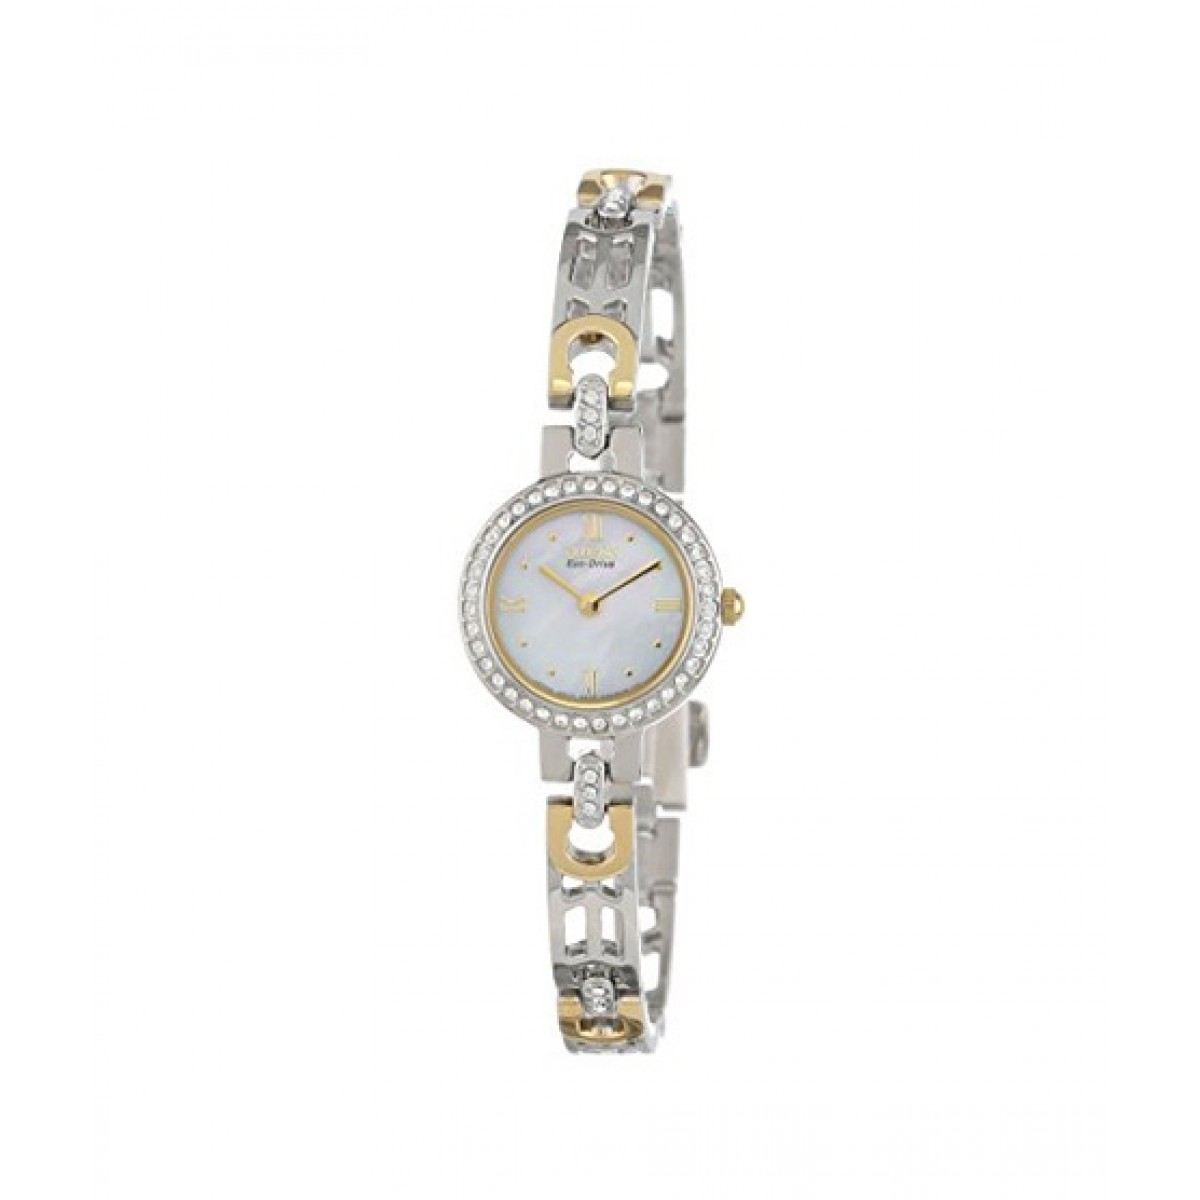 Citizen Silhouette Swarovski Women s Watch Price in Pakistan  4c7532902e